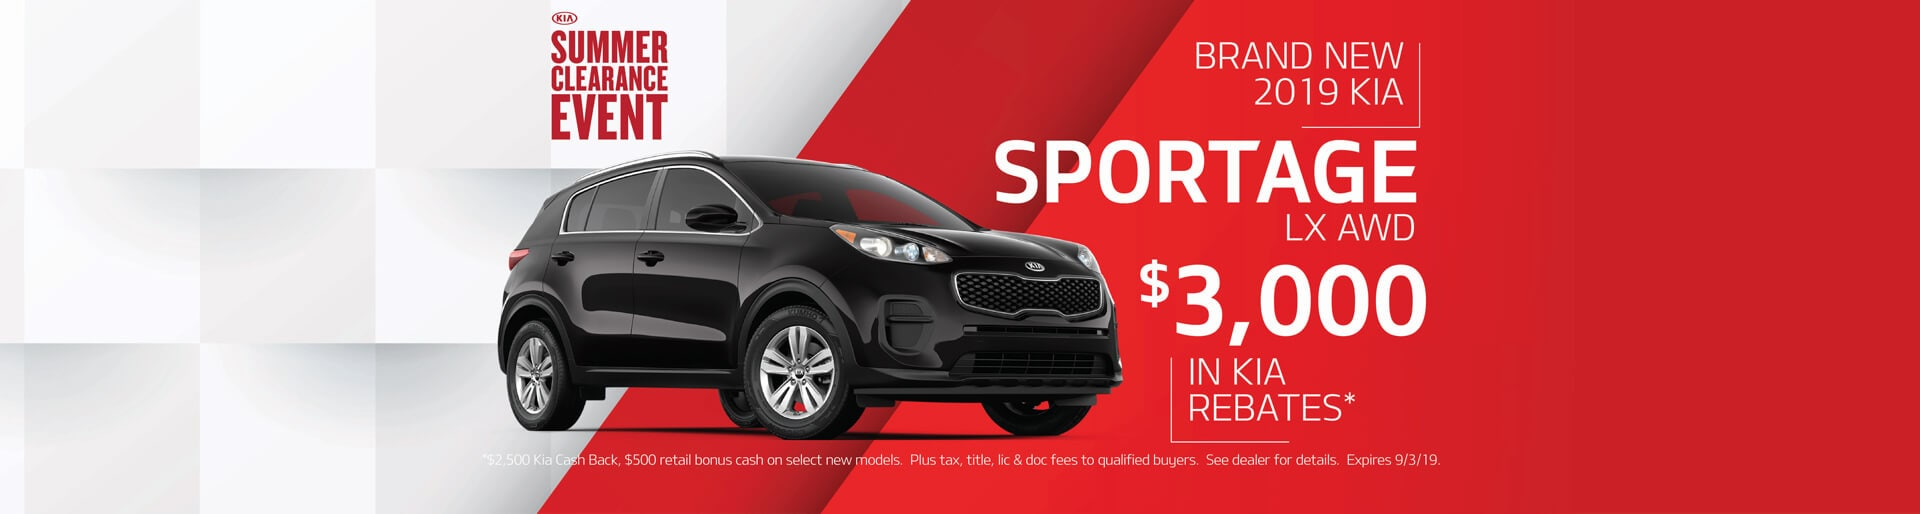 Get $3000 in Kia rebates when buying a 2019 Kia Sportage LX